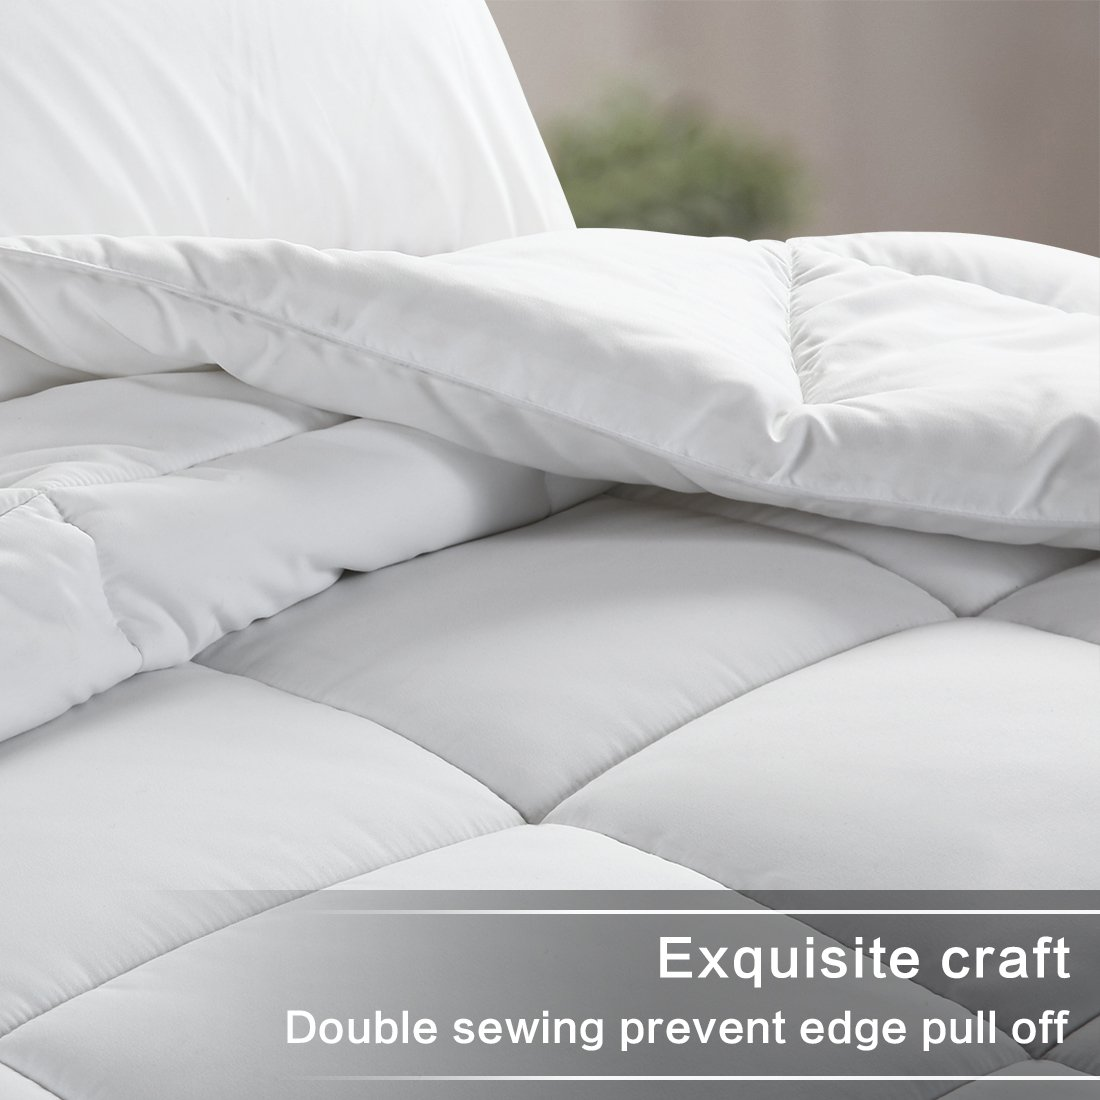 WARM HARBOR Queen All Season White Down Alternative Quilted Comforter and Duvet Insert - Luxury Hotel Collection Premium Lightweight(Queen,White) by WARM HARBOR (Image #3)